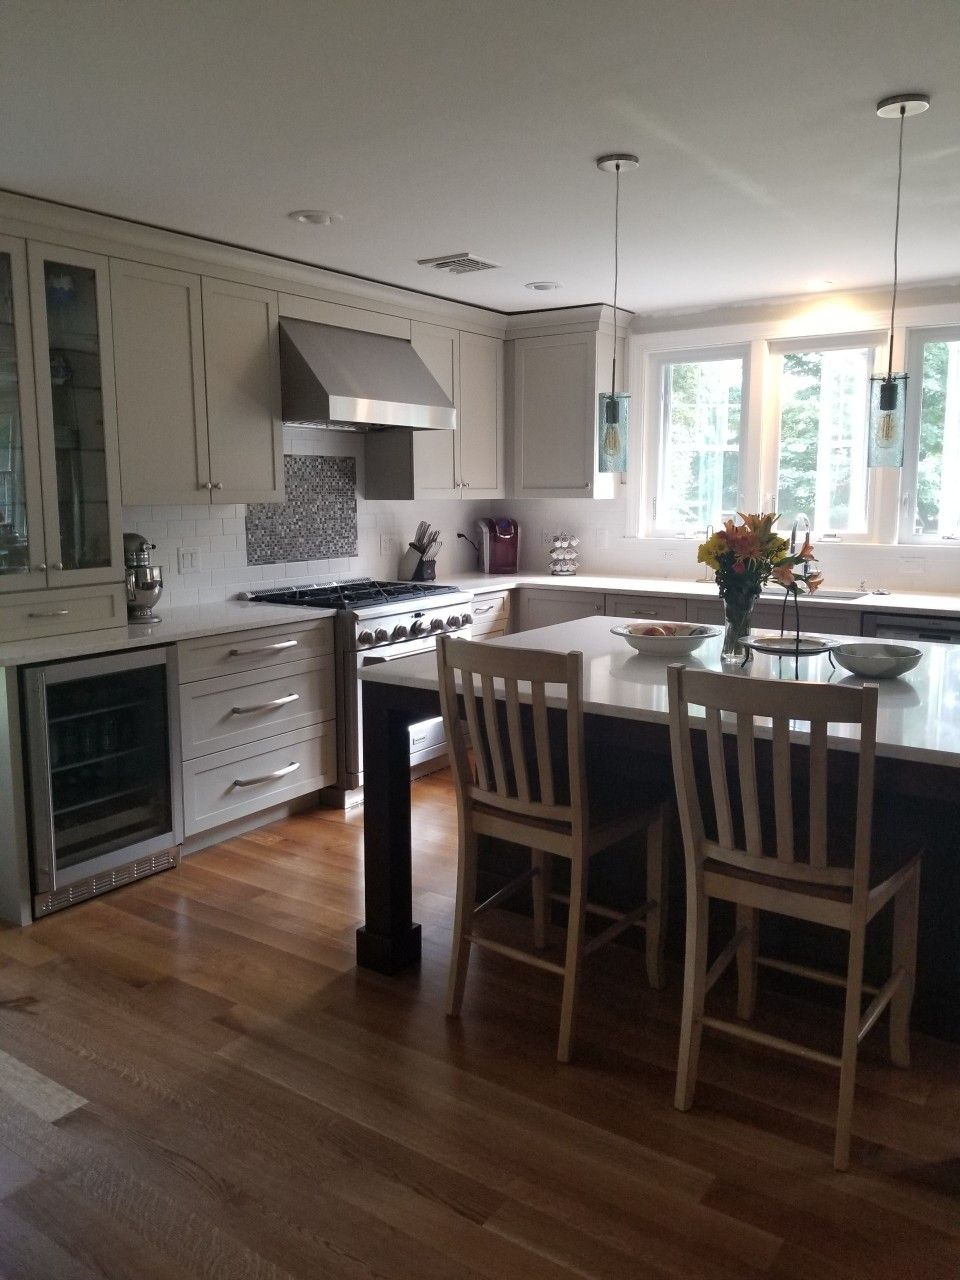 Best Our Remodeled Kitchen Light Gray Cabinets Stainless 400 x 300